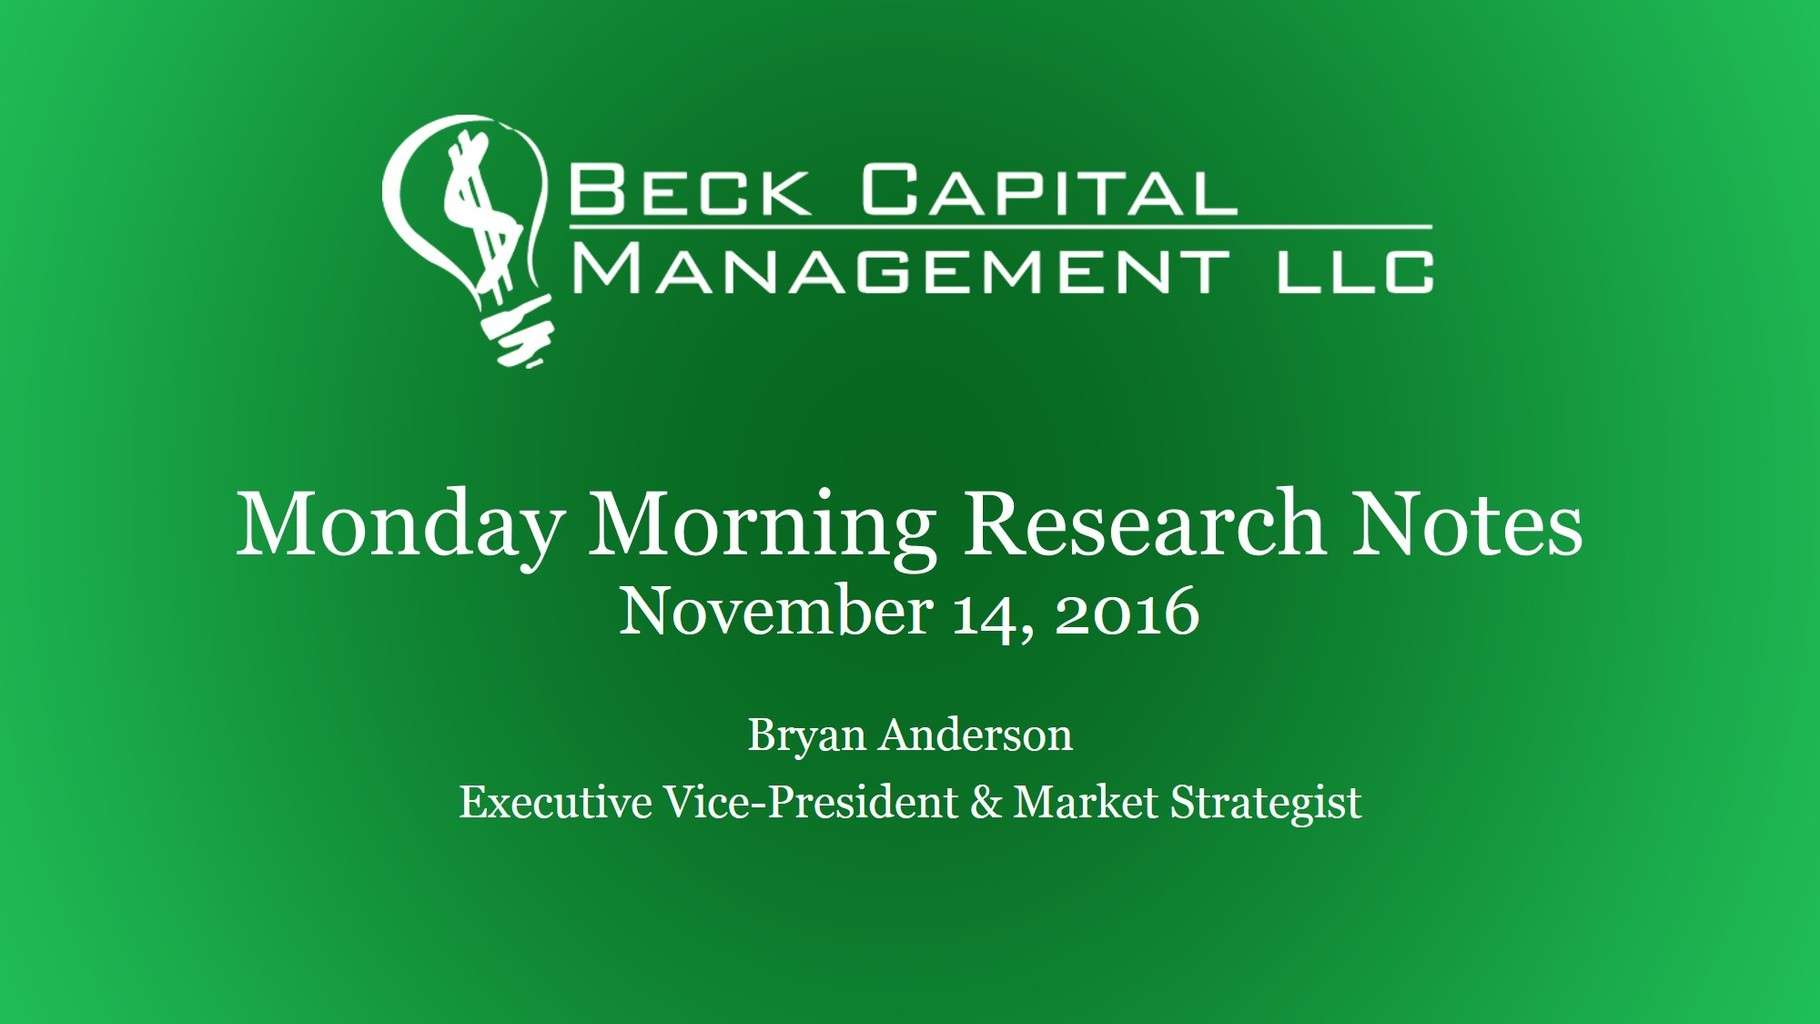 Monday Morning Research Notes - 11-14-16